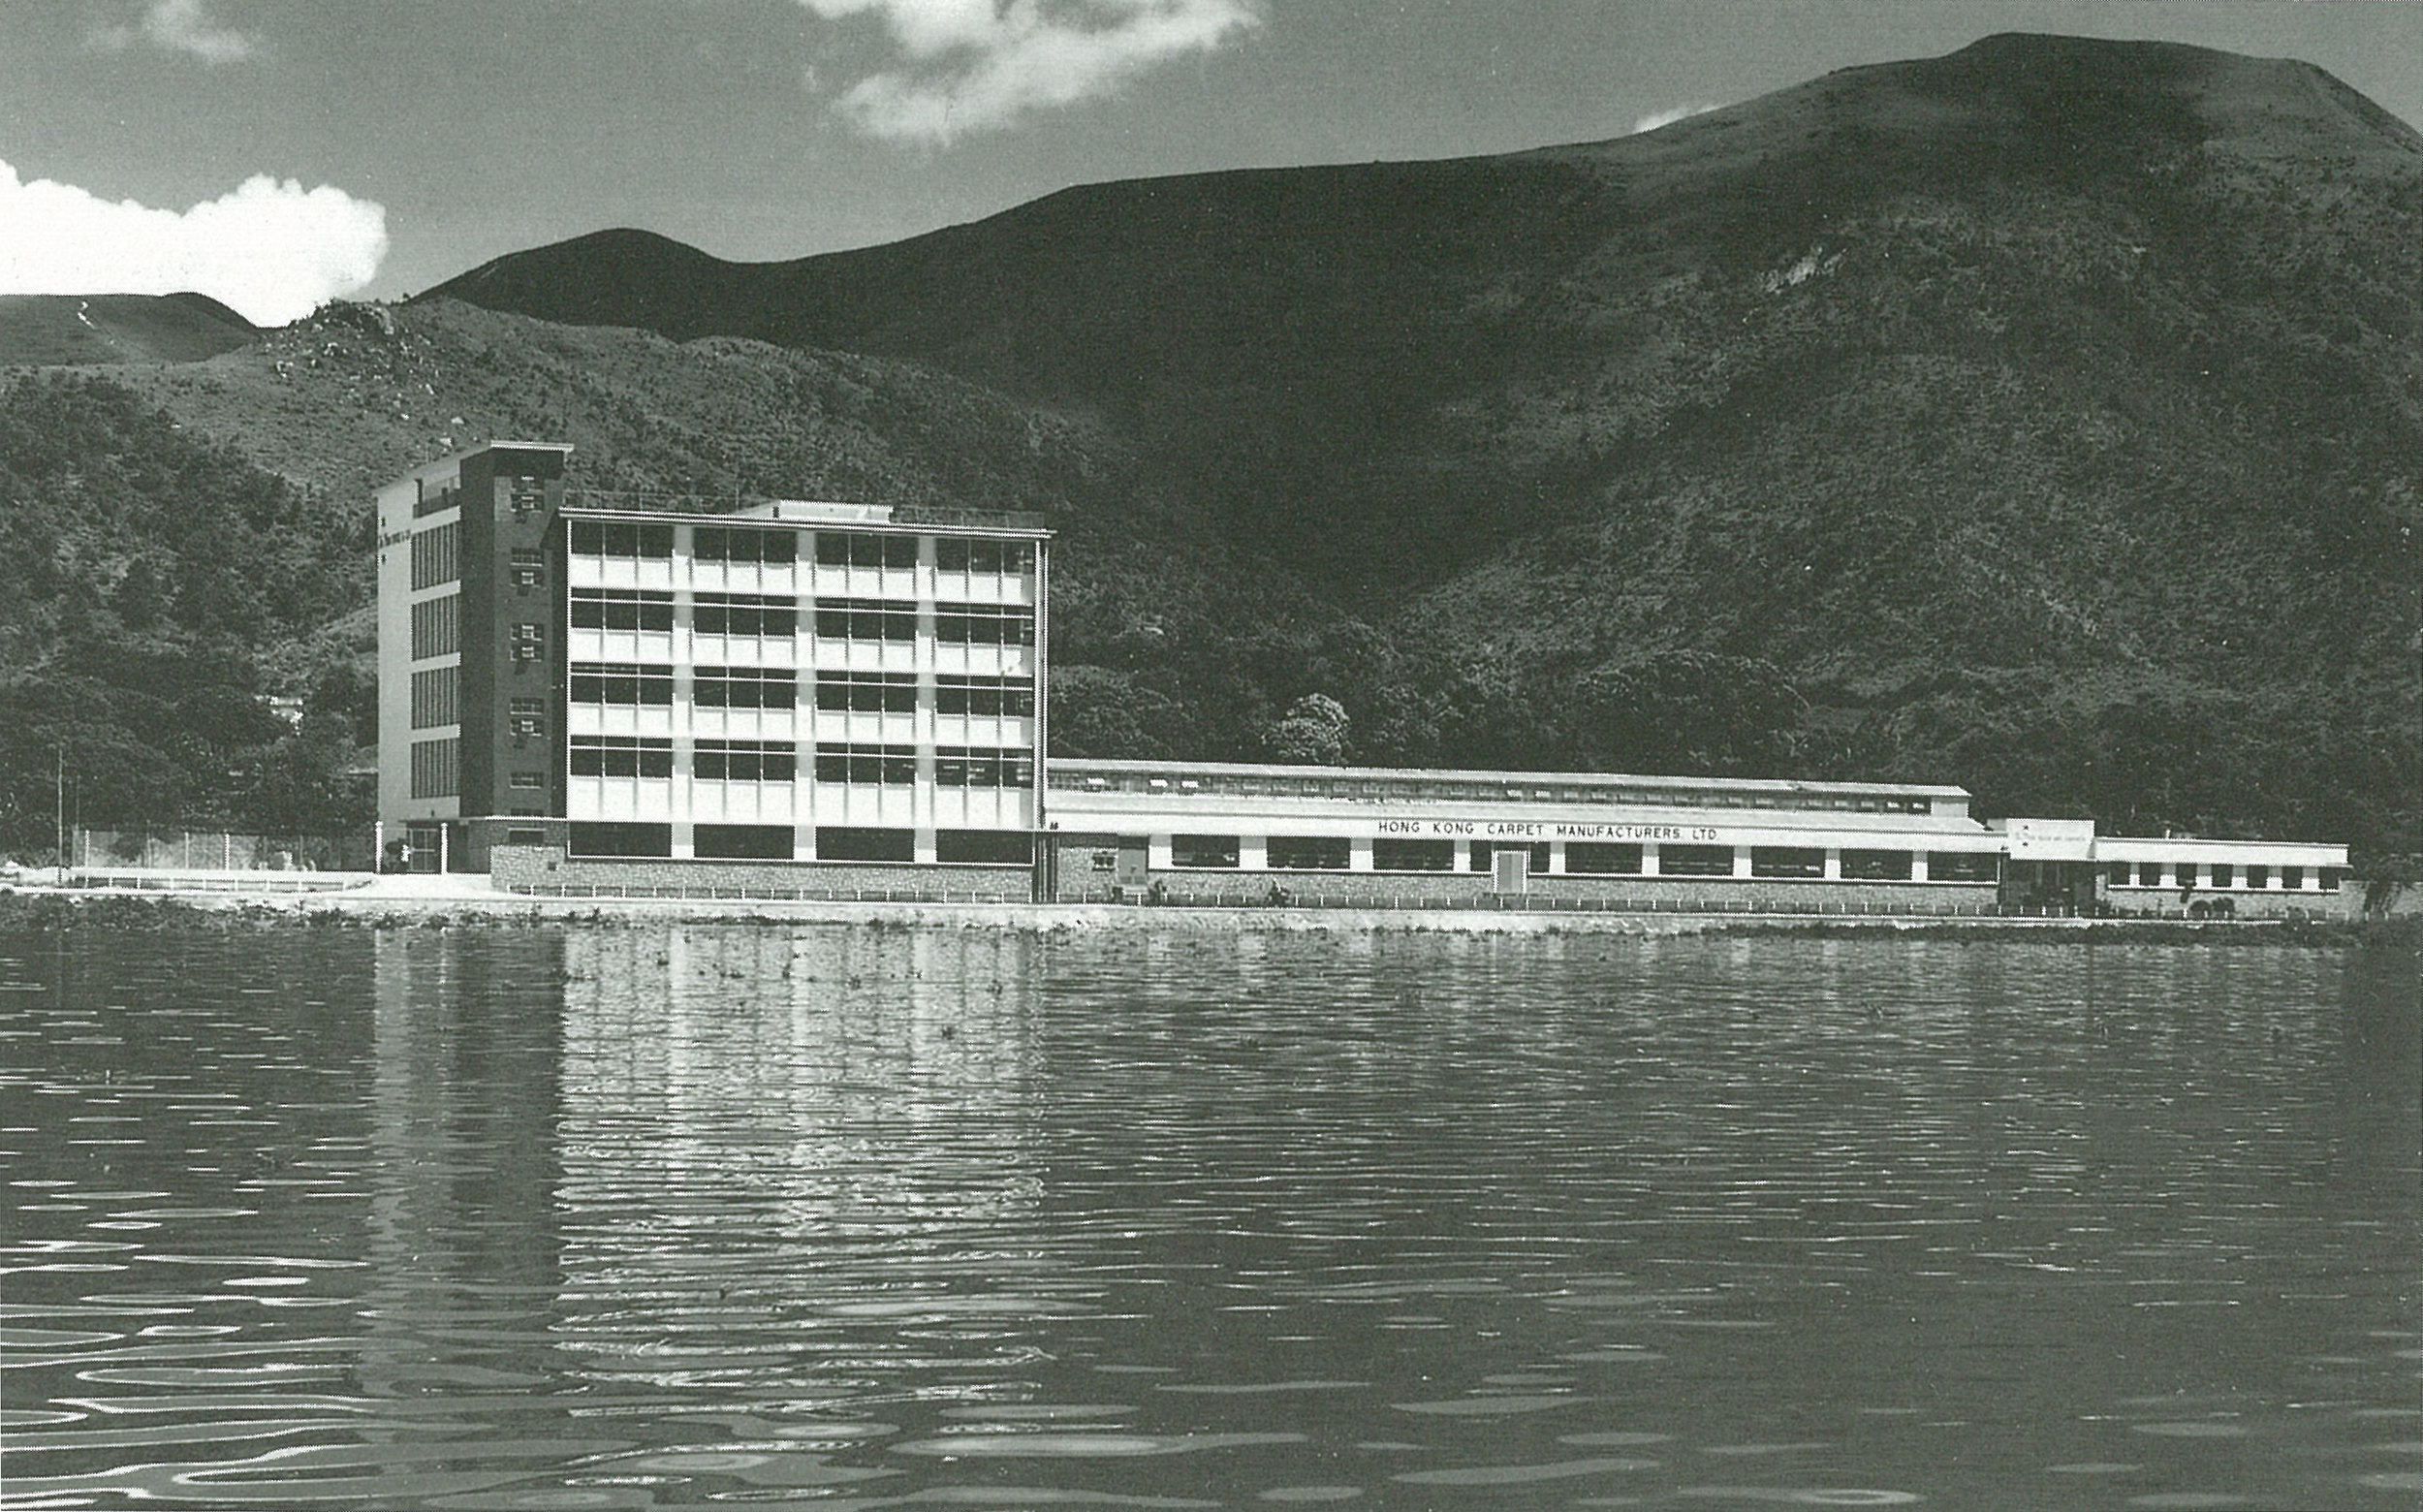 - 1959 - Tai Ping was the first factory to be established in the small market town of Tai Po, on the shore of Tolo Harbour